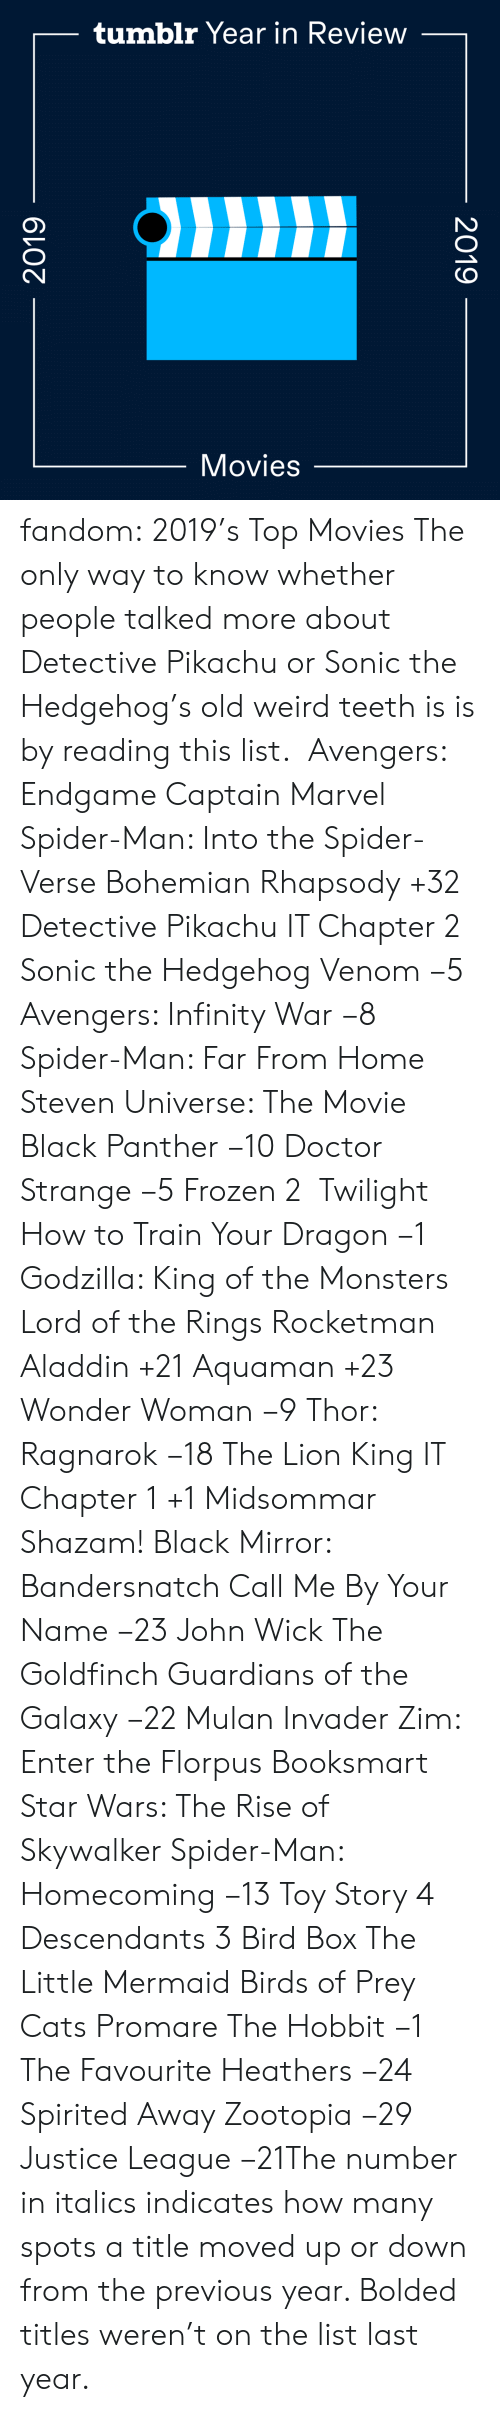 Wonder Woman: tumblr Year in Review  Movies  2019  2019 fandom:  2019's Top Movies  The only way to know whether people talked more about Detective Pikachu or Sonic the Hedgehog's old weird teeth is is by reading this list.   Avengers: Endgame  Captain Marvel  Spider-Man: Into the Spider-Verse  Bohemian Rhapsody +32  Detective Pikachu  IT Chapter 2  Sonic the Hedgehog  Venom −5  Avengers: Infinity War −8  Spider-Man: Far From Home  Steven Universe: The Movie  Black Panther −10  Doctor Strange −5  Frozen 2   Twilight  How to Train Your Dragon −1  Godzilla: King of the Monsters  Lord of the Rings  Rocketman  Aladdin +21  Aquaman +23  Wonder Woman −9  Thor: Ragnarok −18  The Lion King  IT Chapter 1 +1  Midsommar  Shazam!  Black Mirror: Bandersnatch  Call Me By Your Name −23  John Wick  The Goldfinch  Guardians of the Galaxy −22  Mulan  Invader Zim: Enter the Florpus  Booksmart  Star Wars: The Rise of Skywalker  Spider-Man: Homecoming −13  Toy Story 4  Descendants 3  Bird Box  The Little Mermaid  Birds of Prey  Cats  Promare  The Hobbit −1  The Favourite  Heathers −24  Spirited Away  Zootopia −29 Justice League −21The number in italics indicates how many spots a title moved up or down from the previous year. Bolded titles weren't on the list last year.